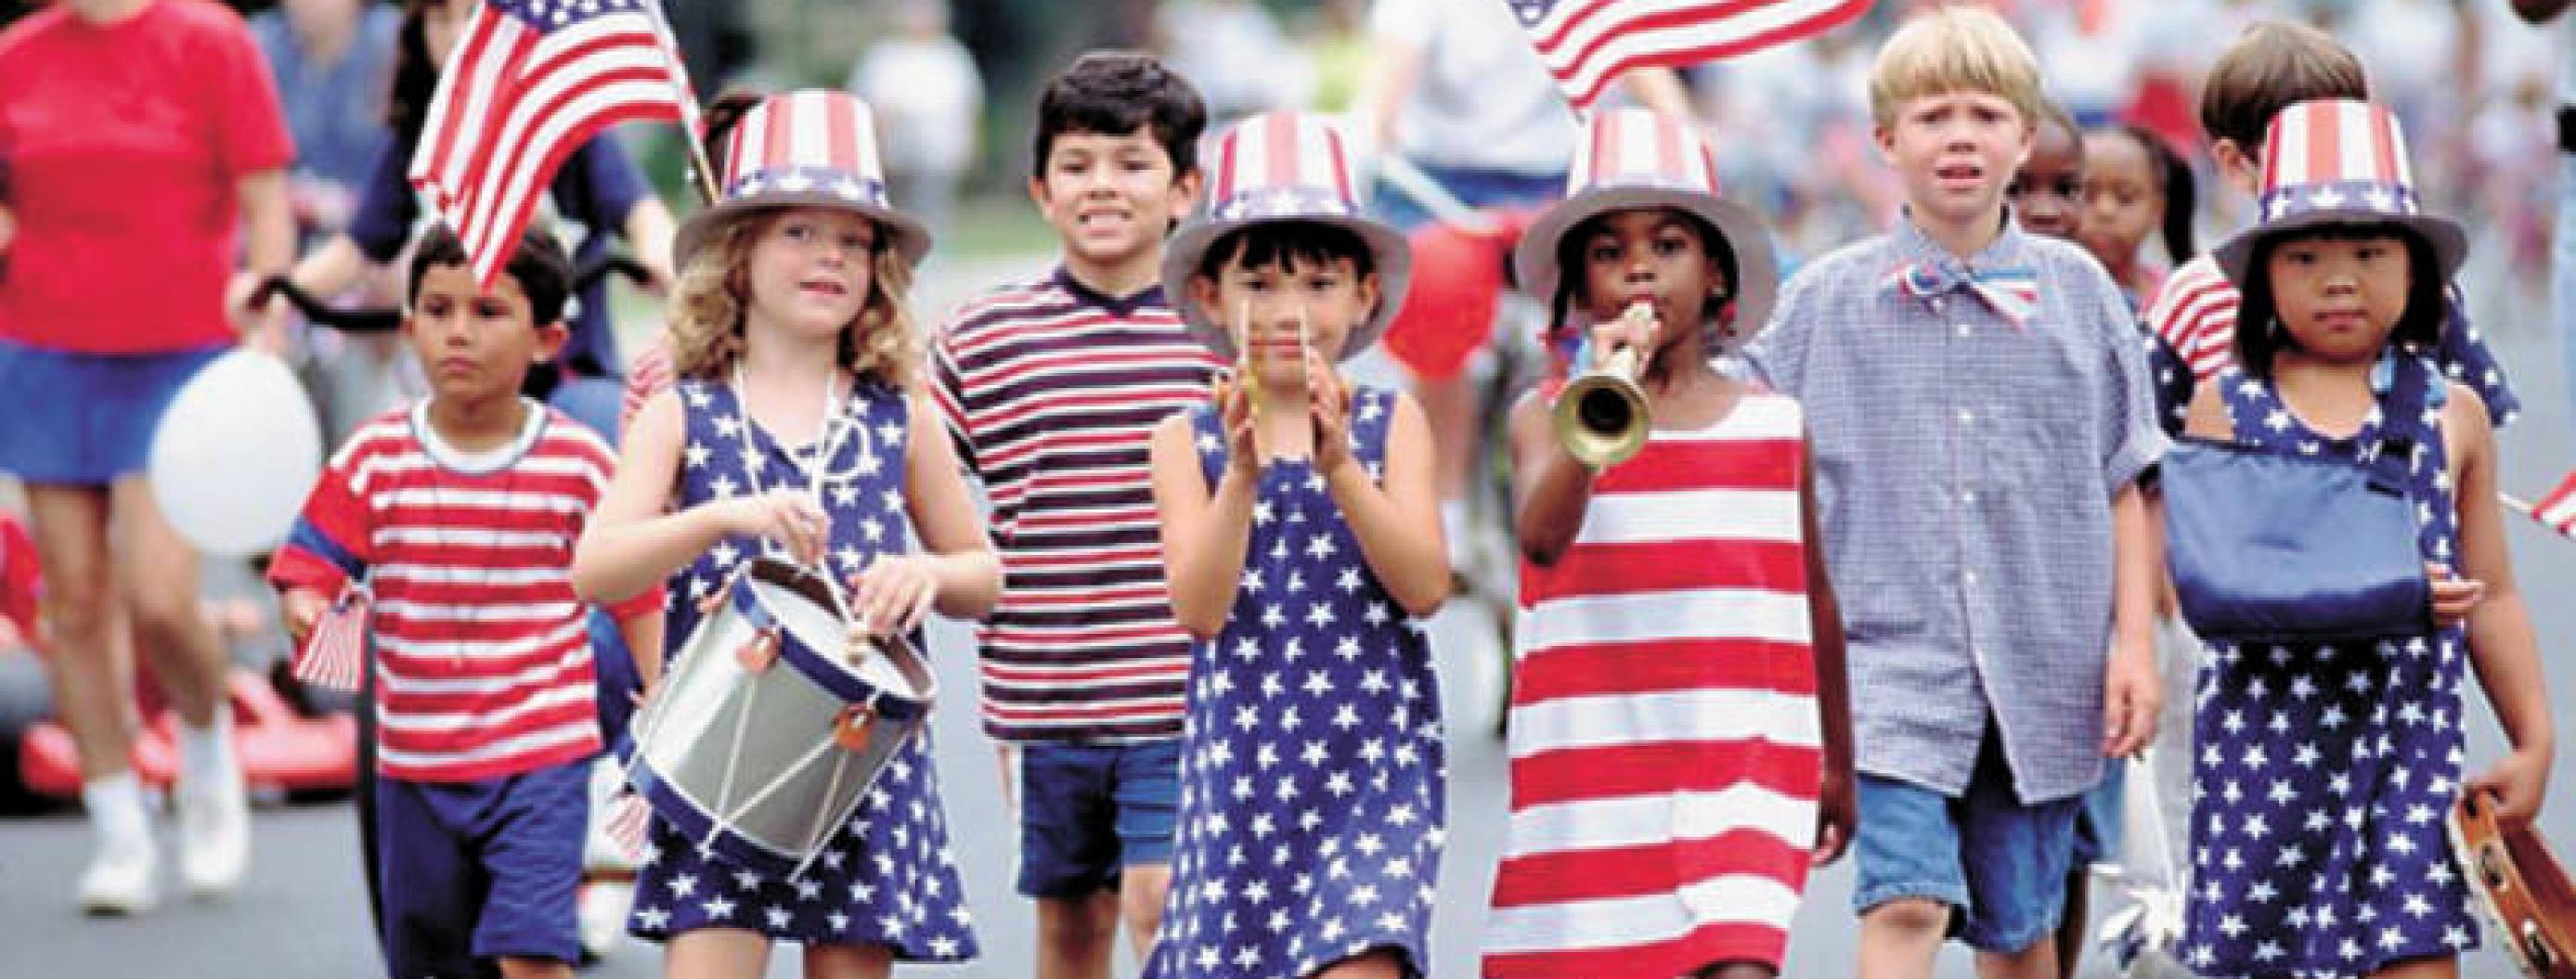 5 Interesting Facts About Labor Day You Didn't Know